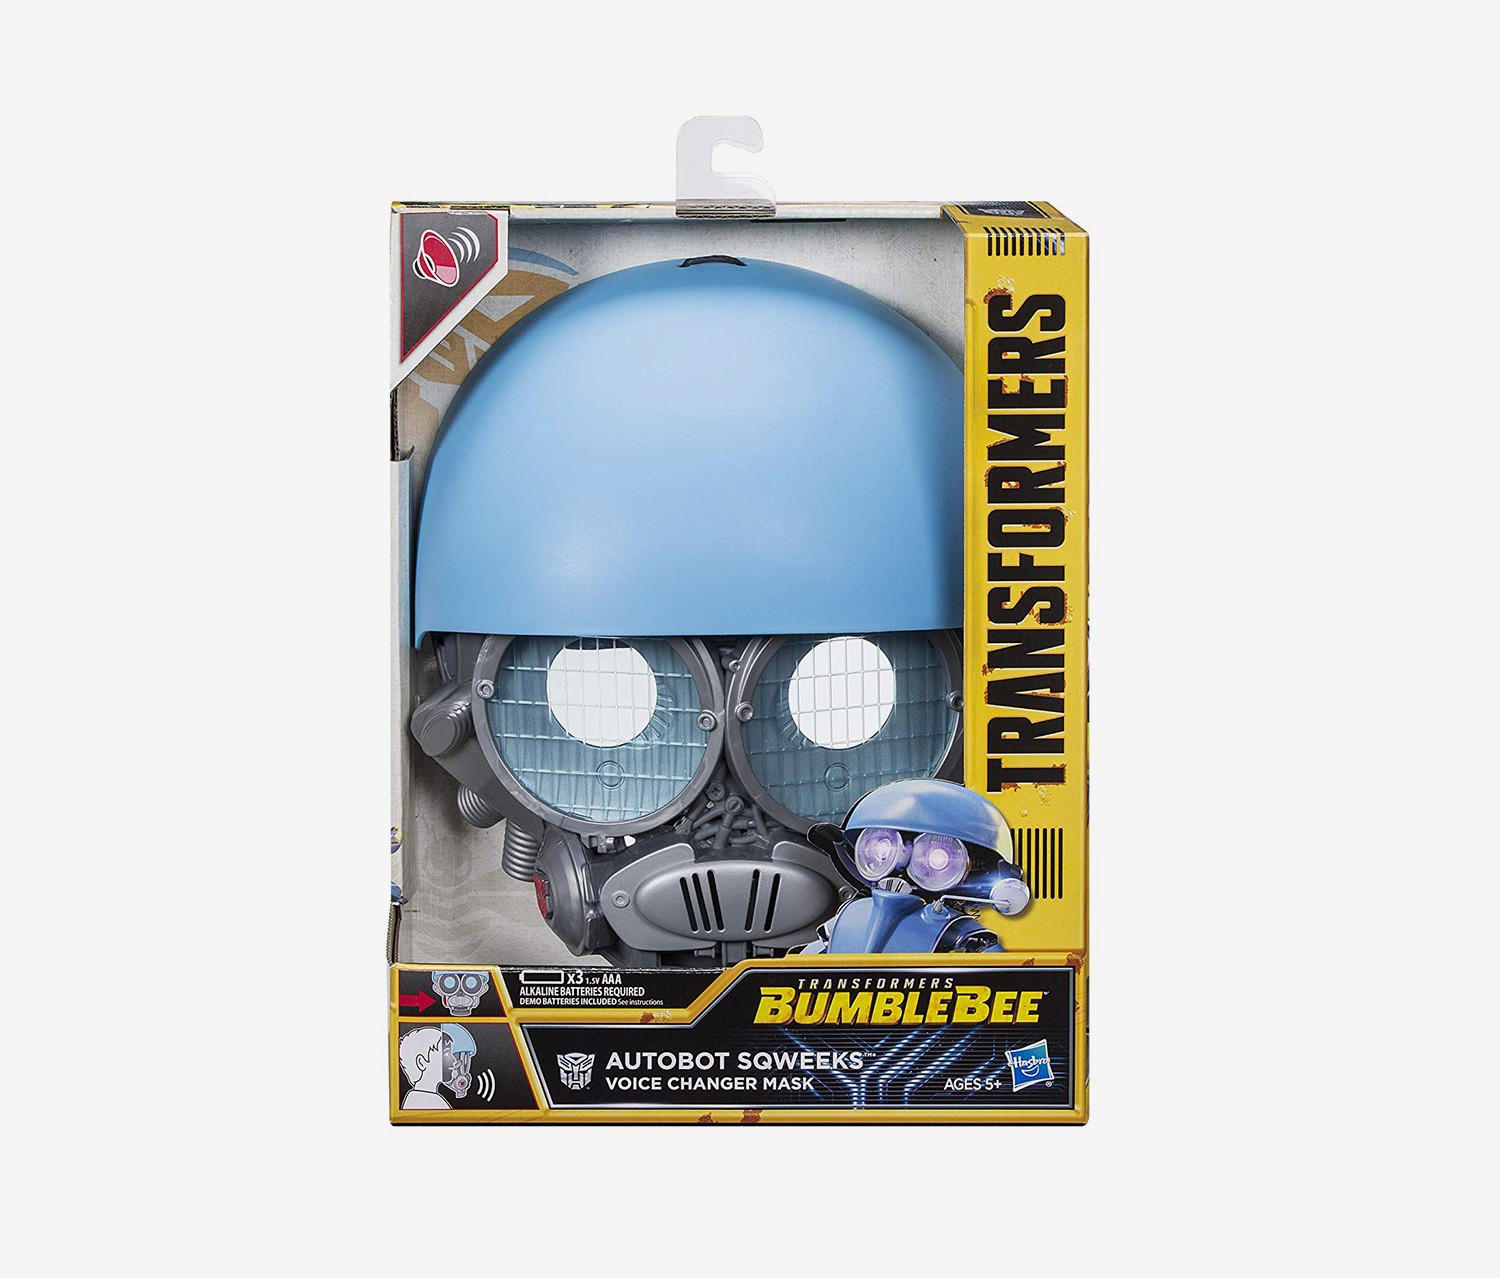 Transformers: Bumblebee Voice Changer Mask Autobot Sqweeks, Blue